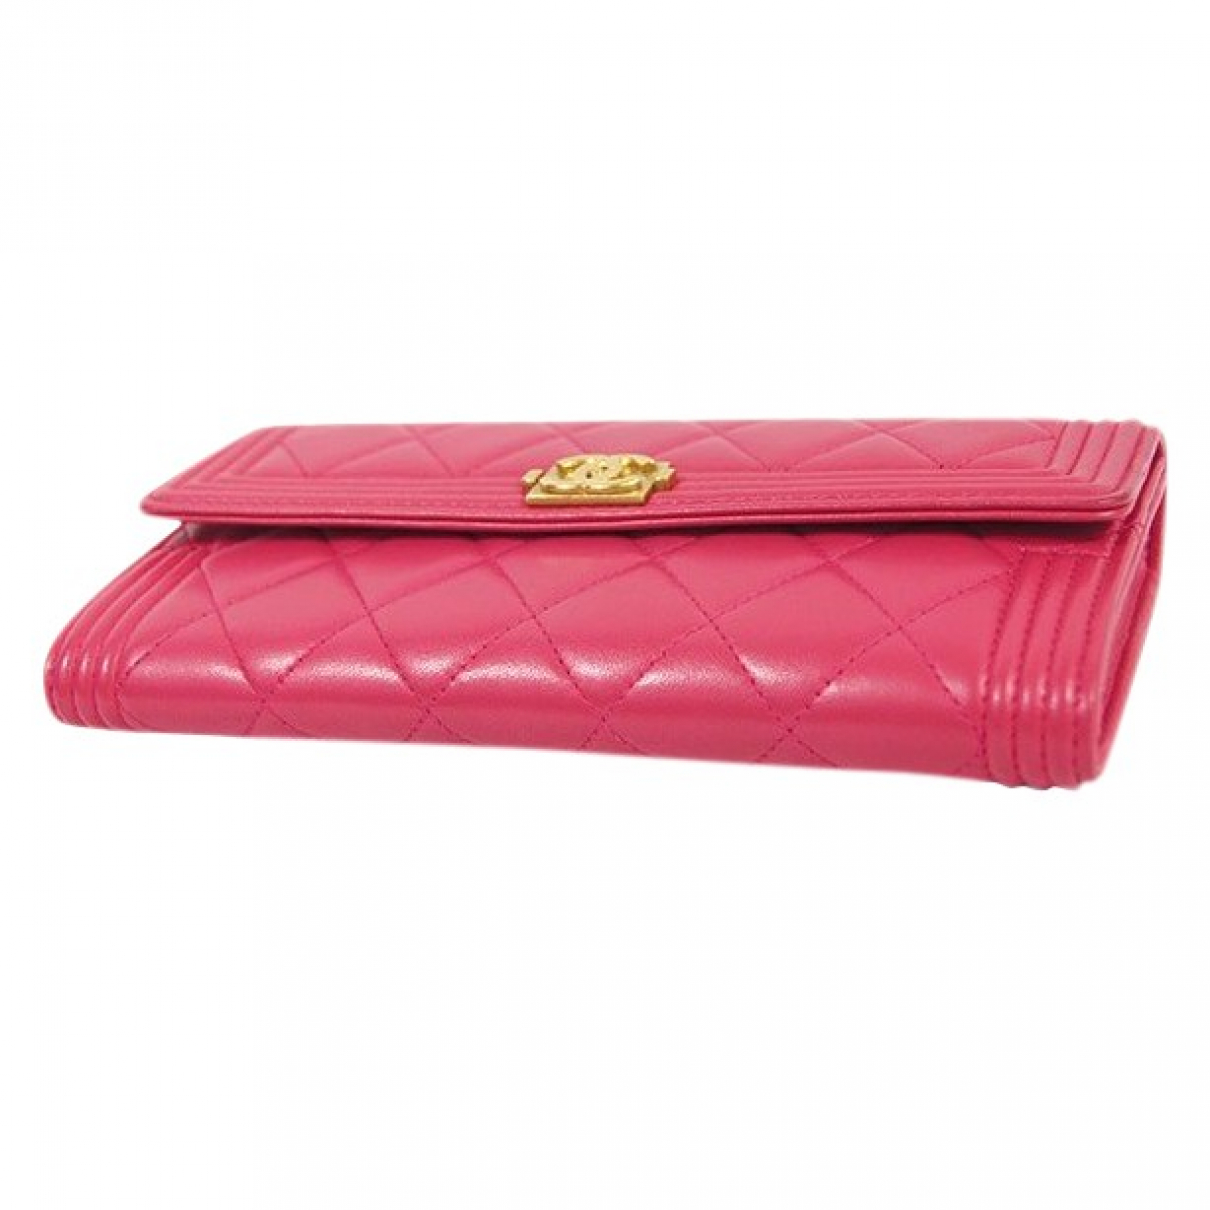 Chanel Boy Pink Leather wallet for Women N